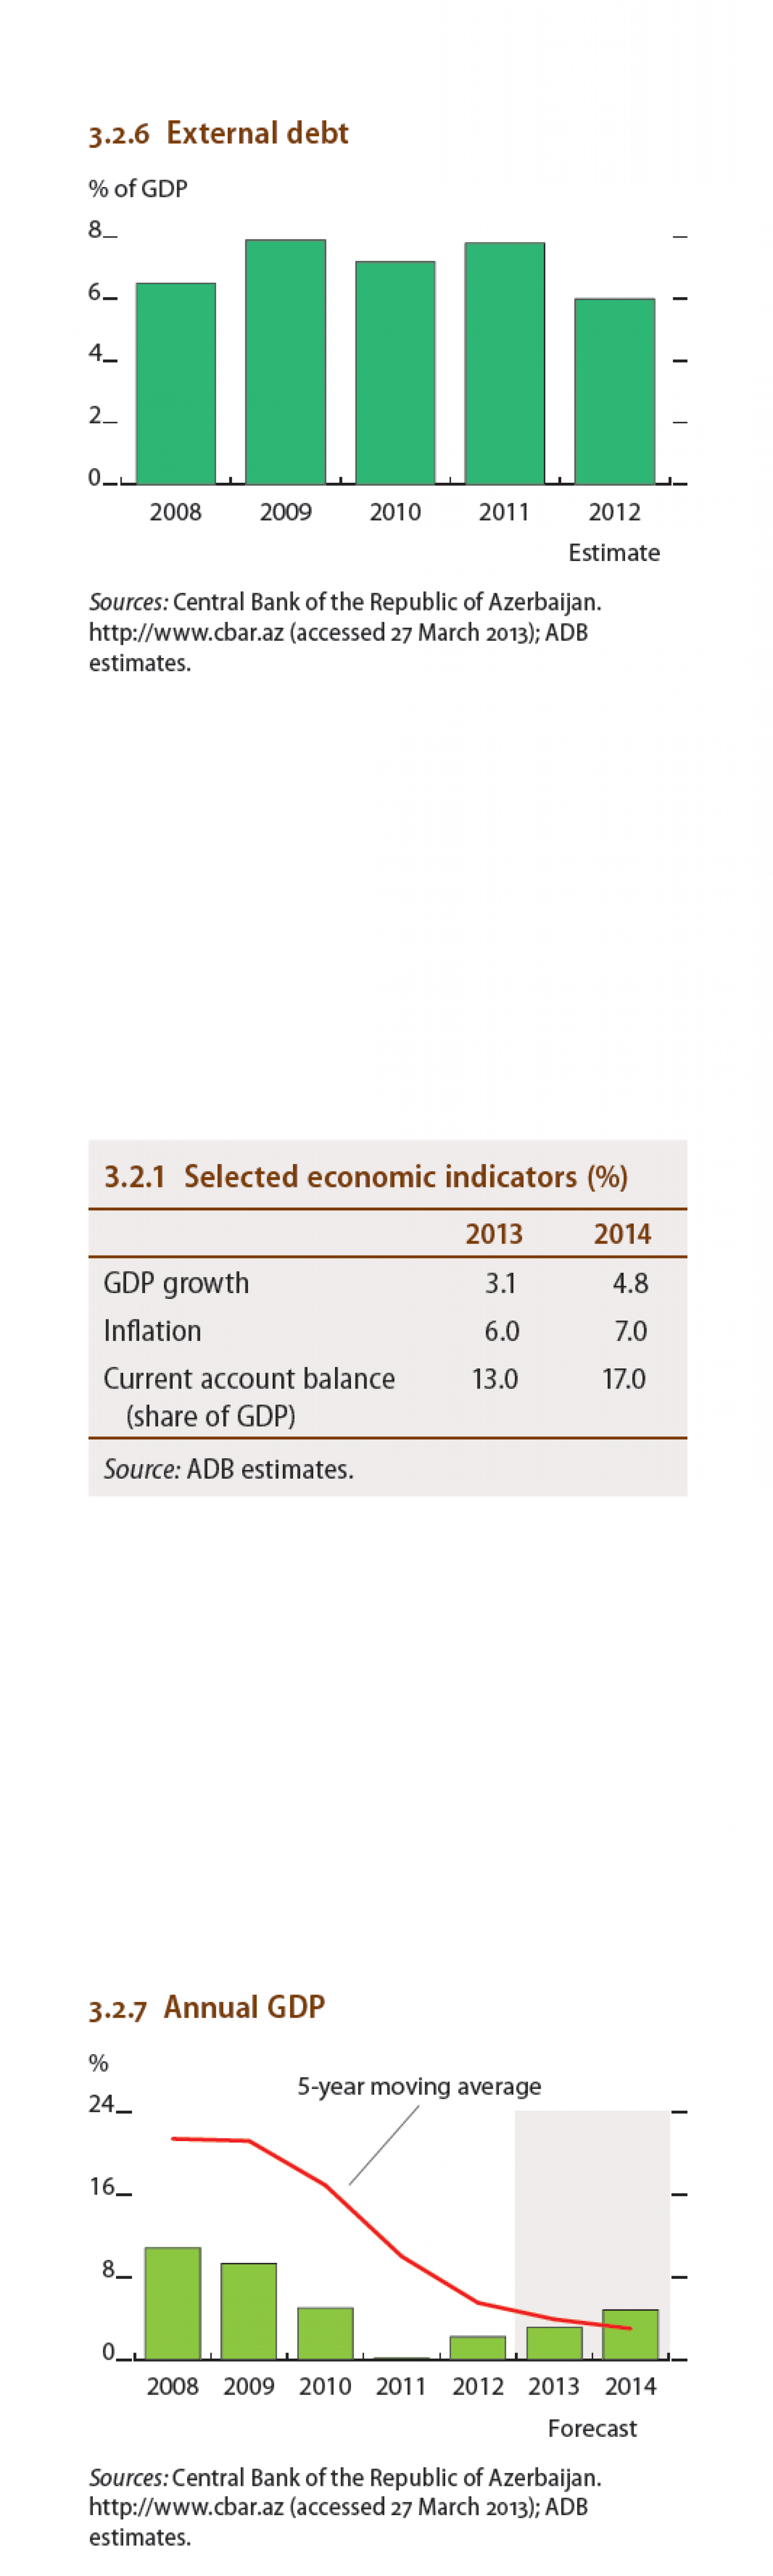 Azerbaijan : External Debt, Annual GDP, Selected economic indicators  Infographic